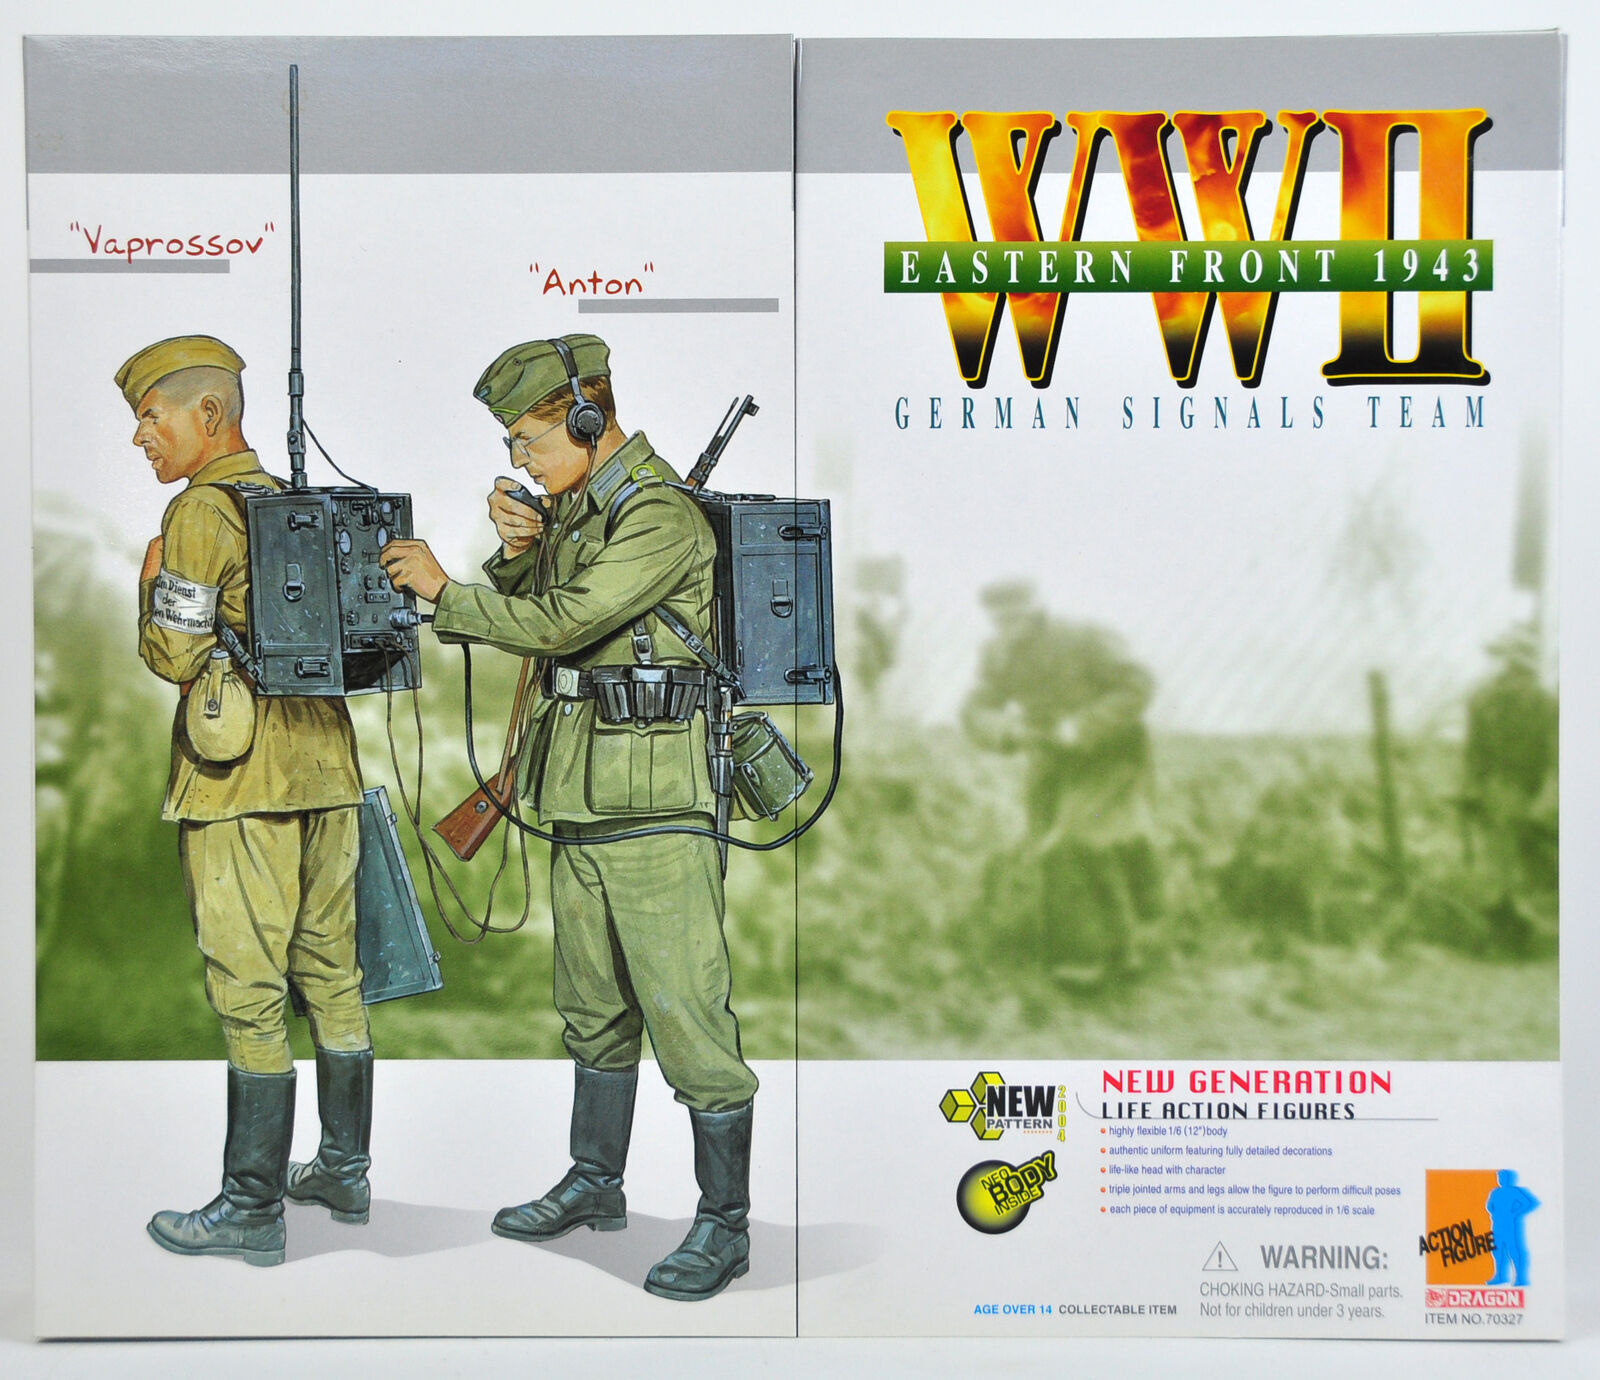 Dragon Action Figure WWII German German German Signals Team 1 6 Scale 70327 Radio Double Set 57ee7a